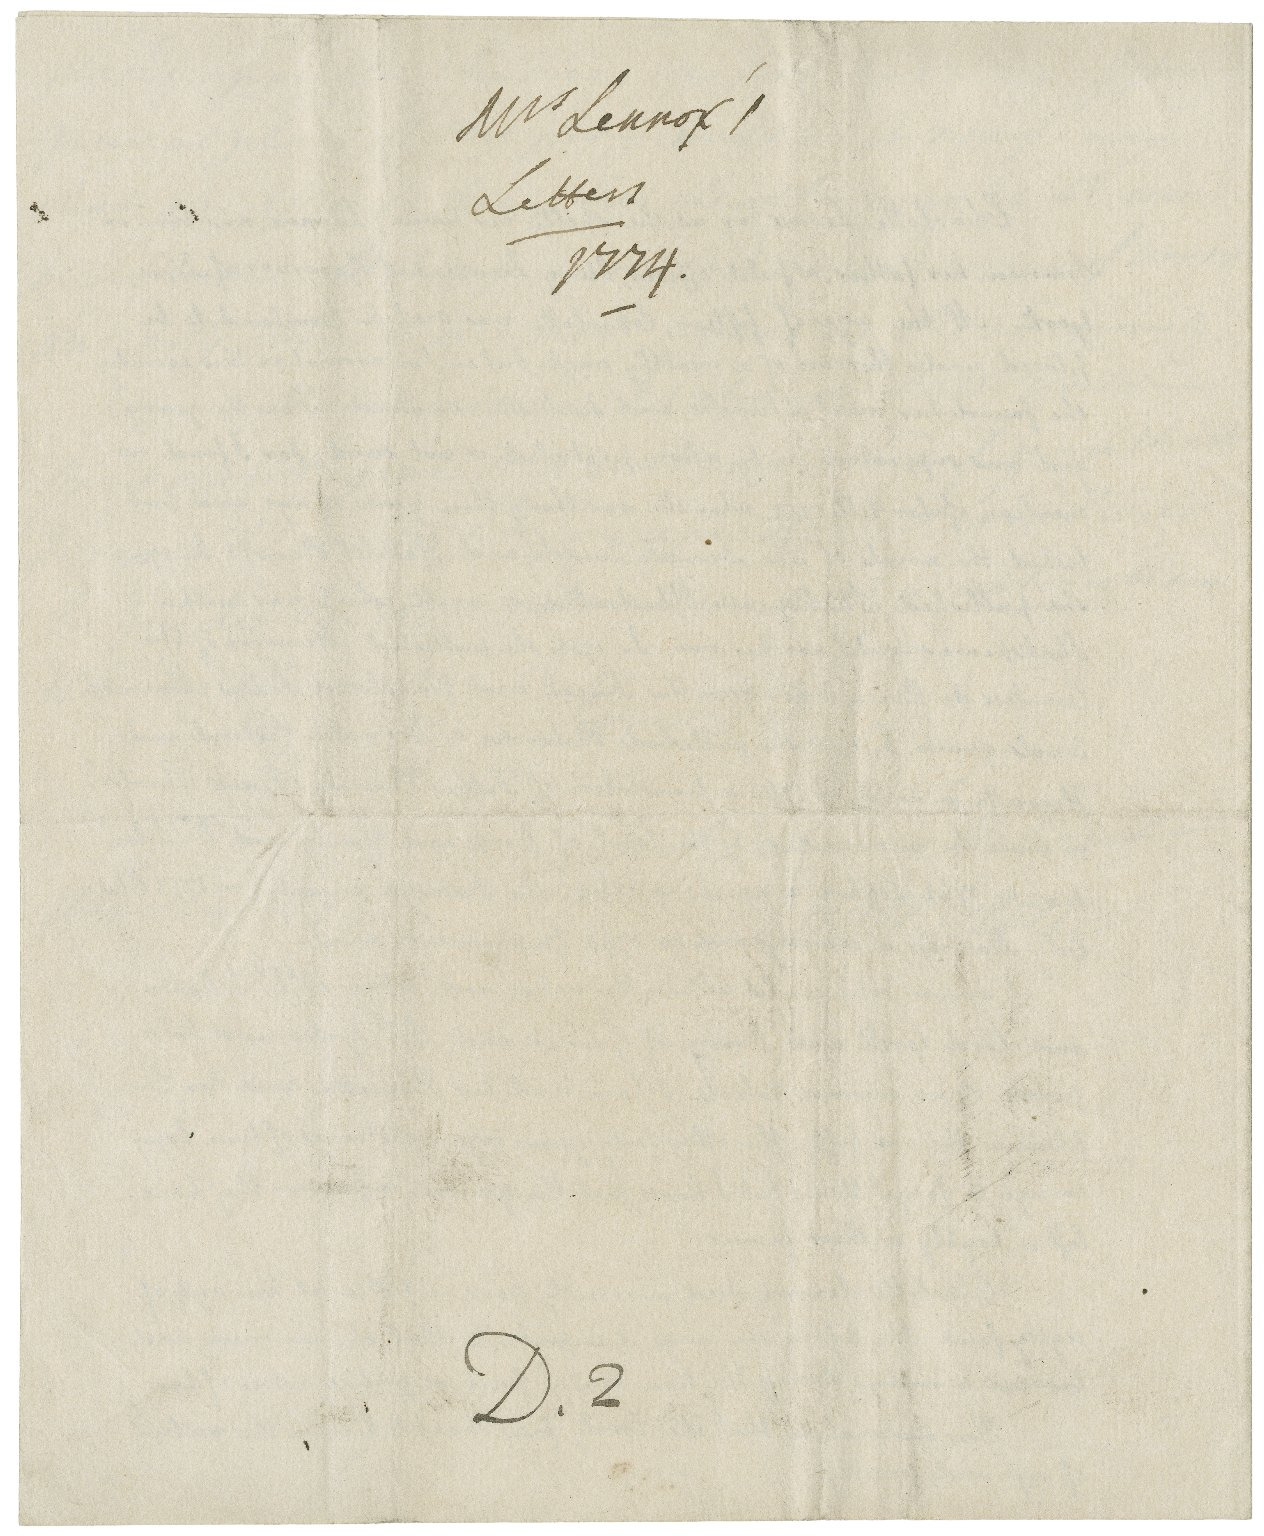 Autograph letter signed from Charlotte Lennox to David Garrick [manuscript], 1774 August 4.